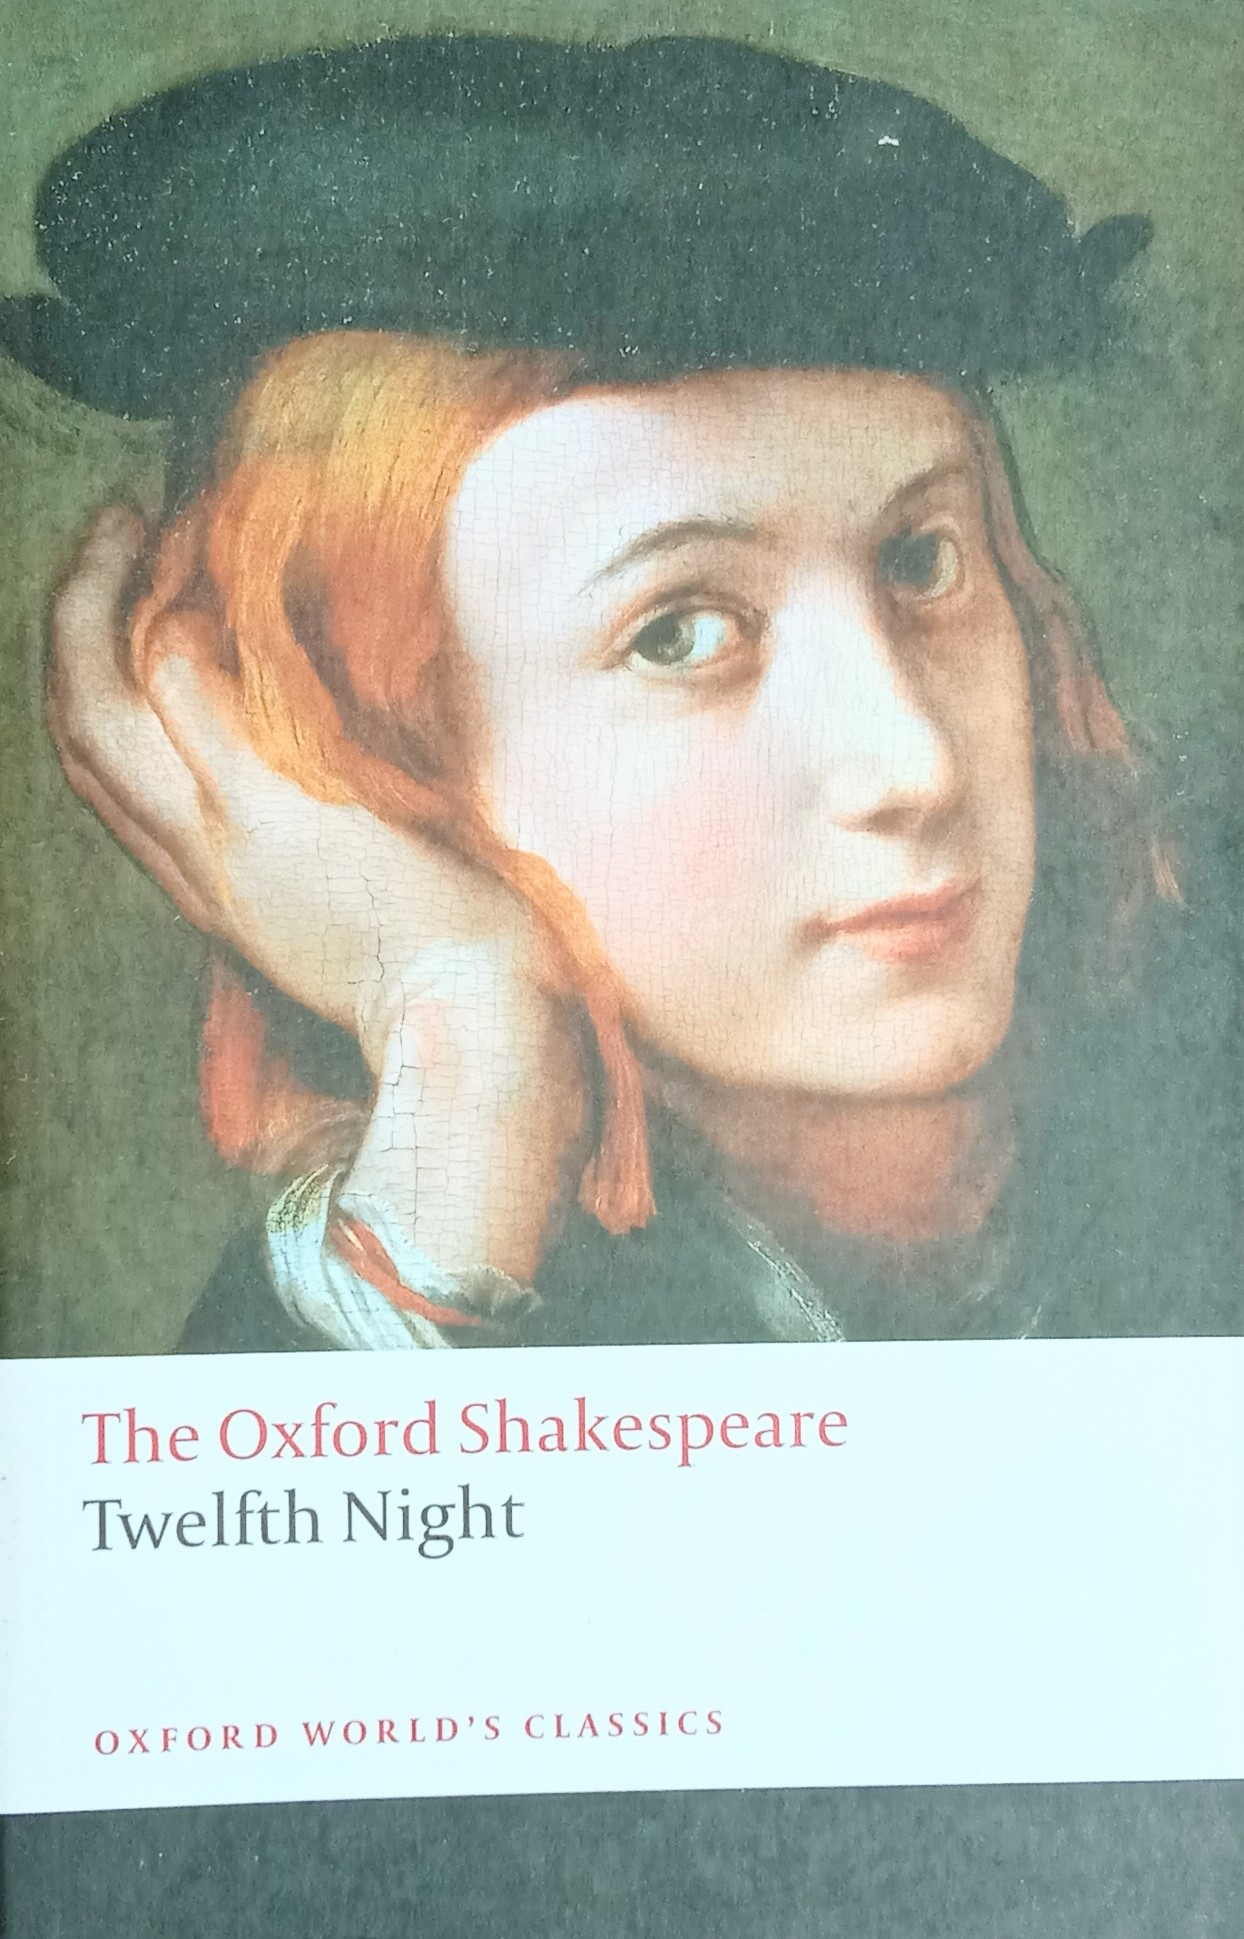 The Oxford Shakespeare Twelfth Night